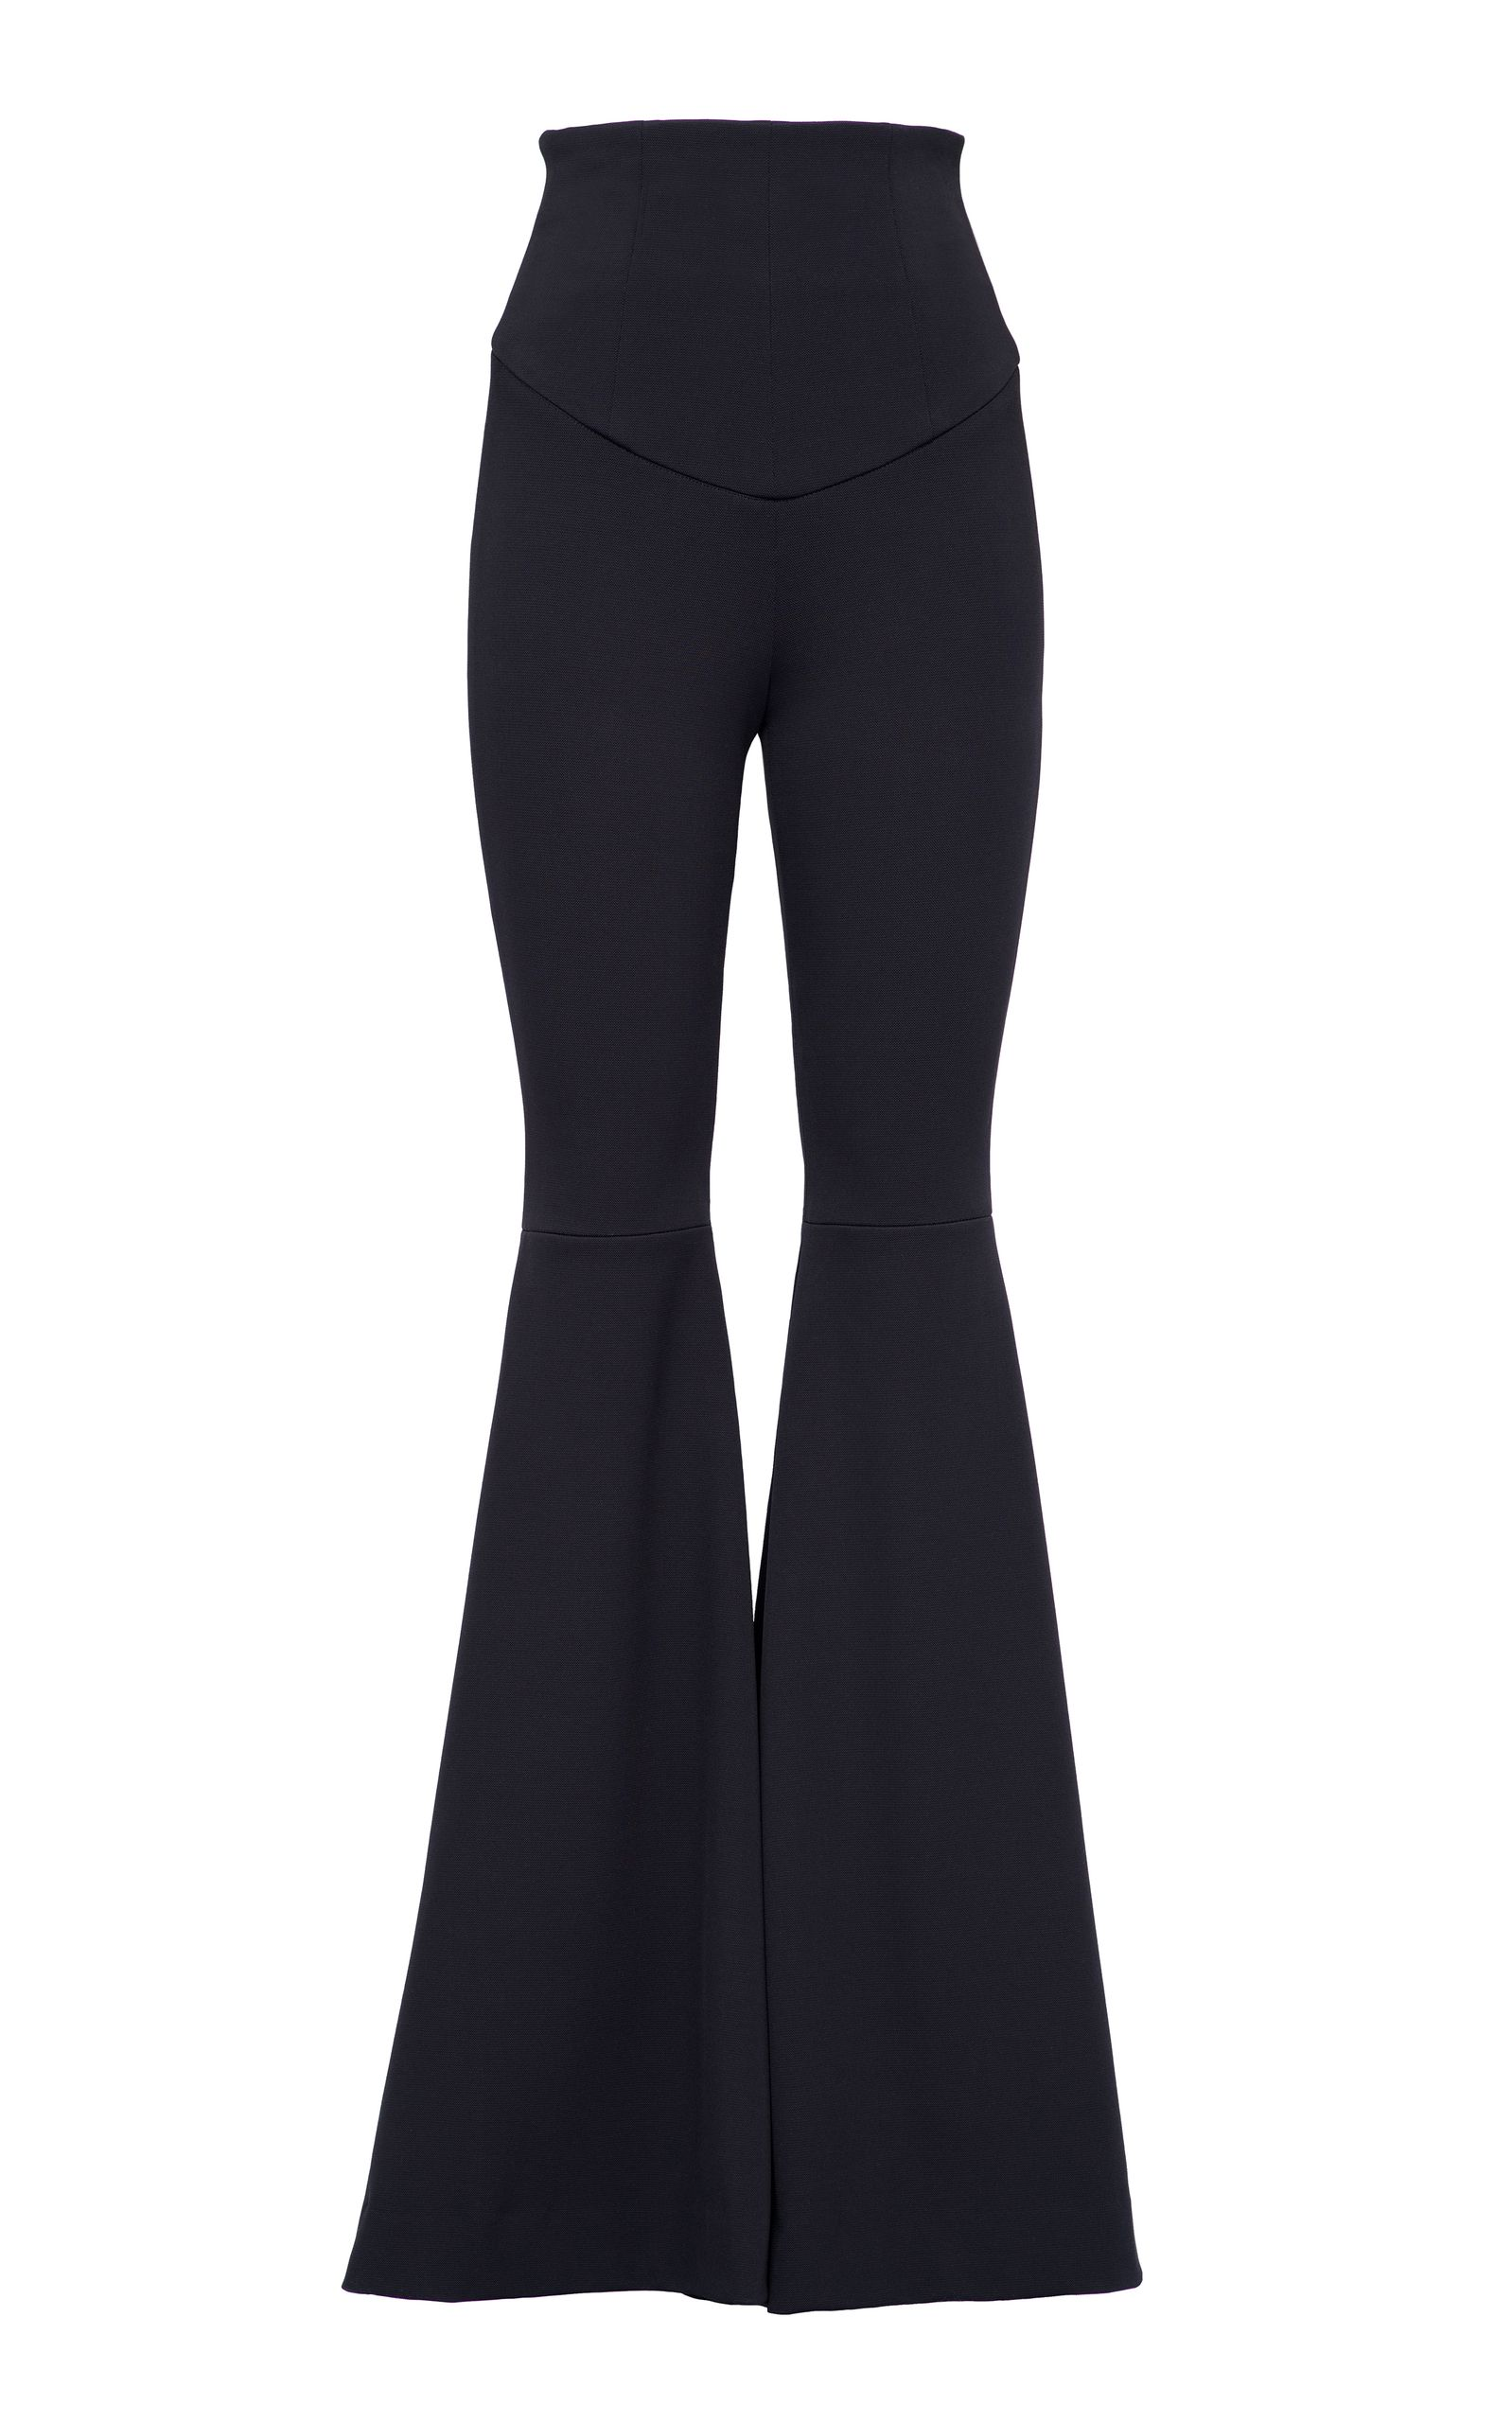 TROUSERS - Casual trousers Maria Lucia Hohan Discount Latest Collections Low Price Fee Shipping For Sale Discount Footlocker l7vkh